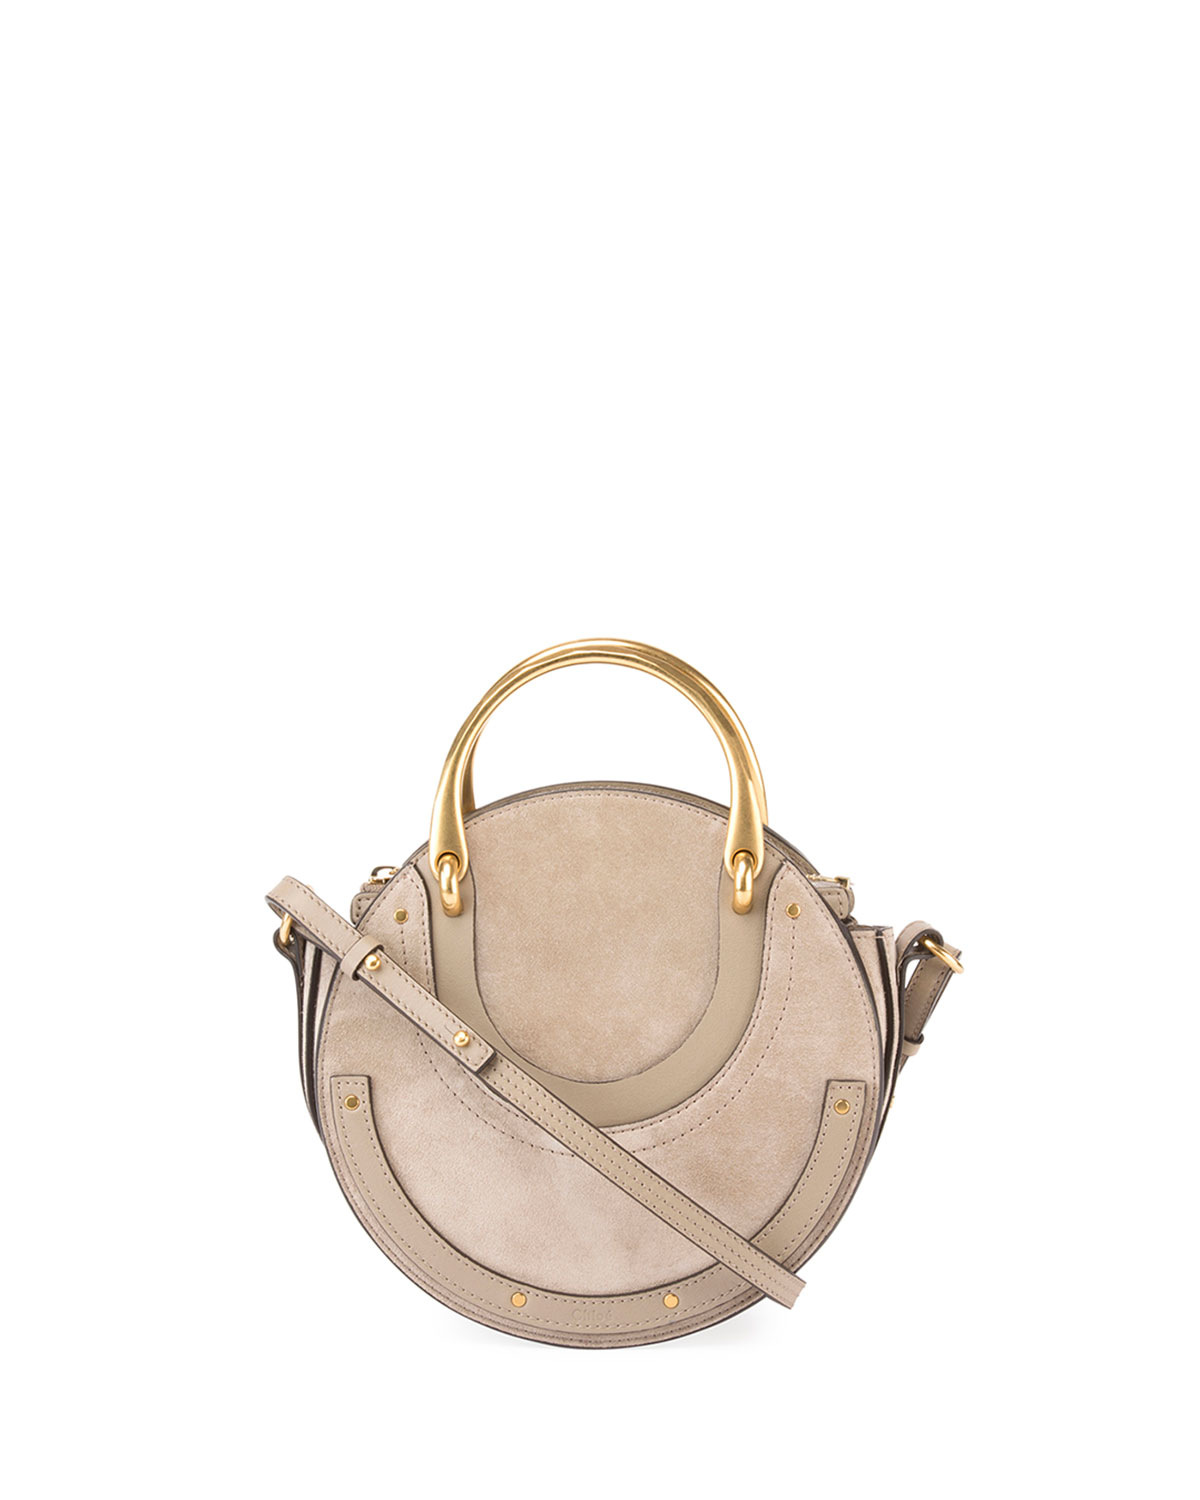 acda26c048 Pixie Small Round Double-Handle Shoulder Bag